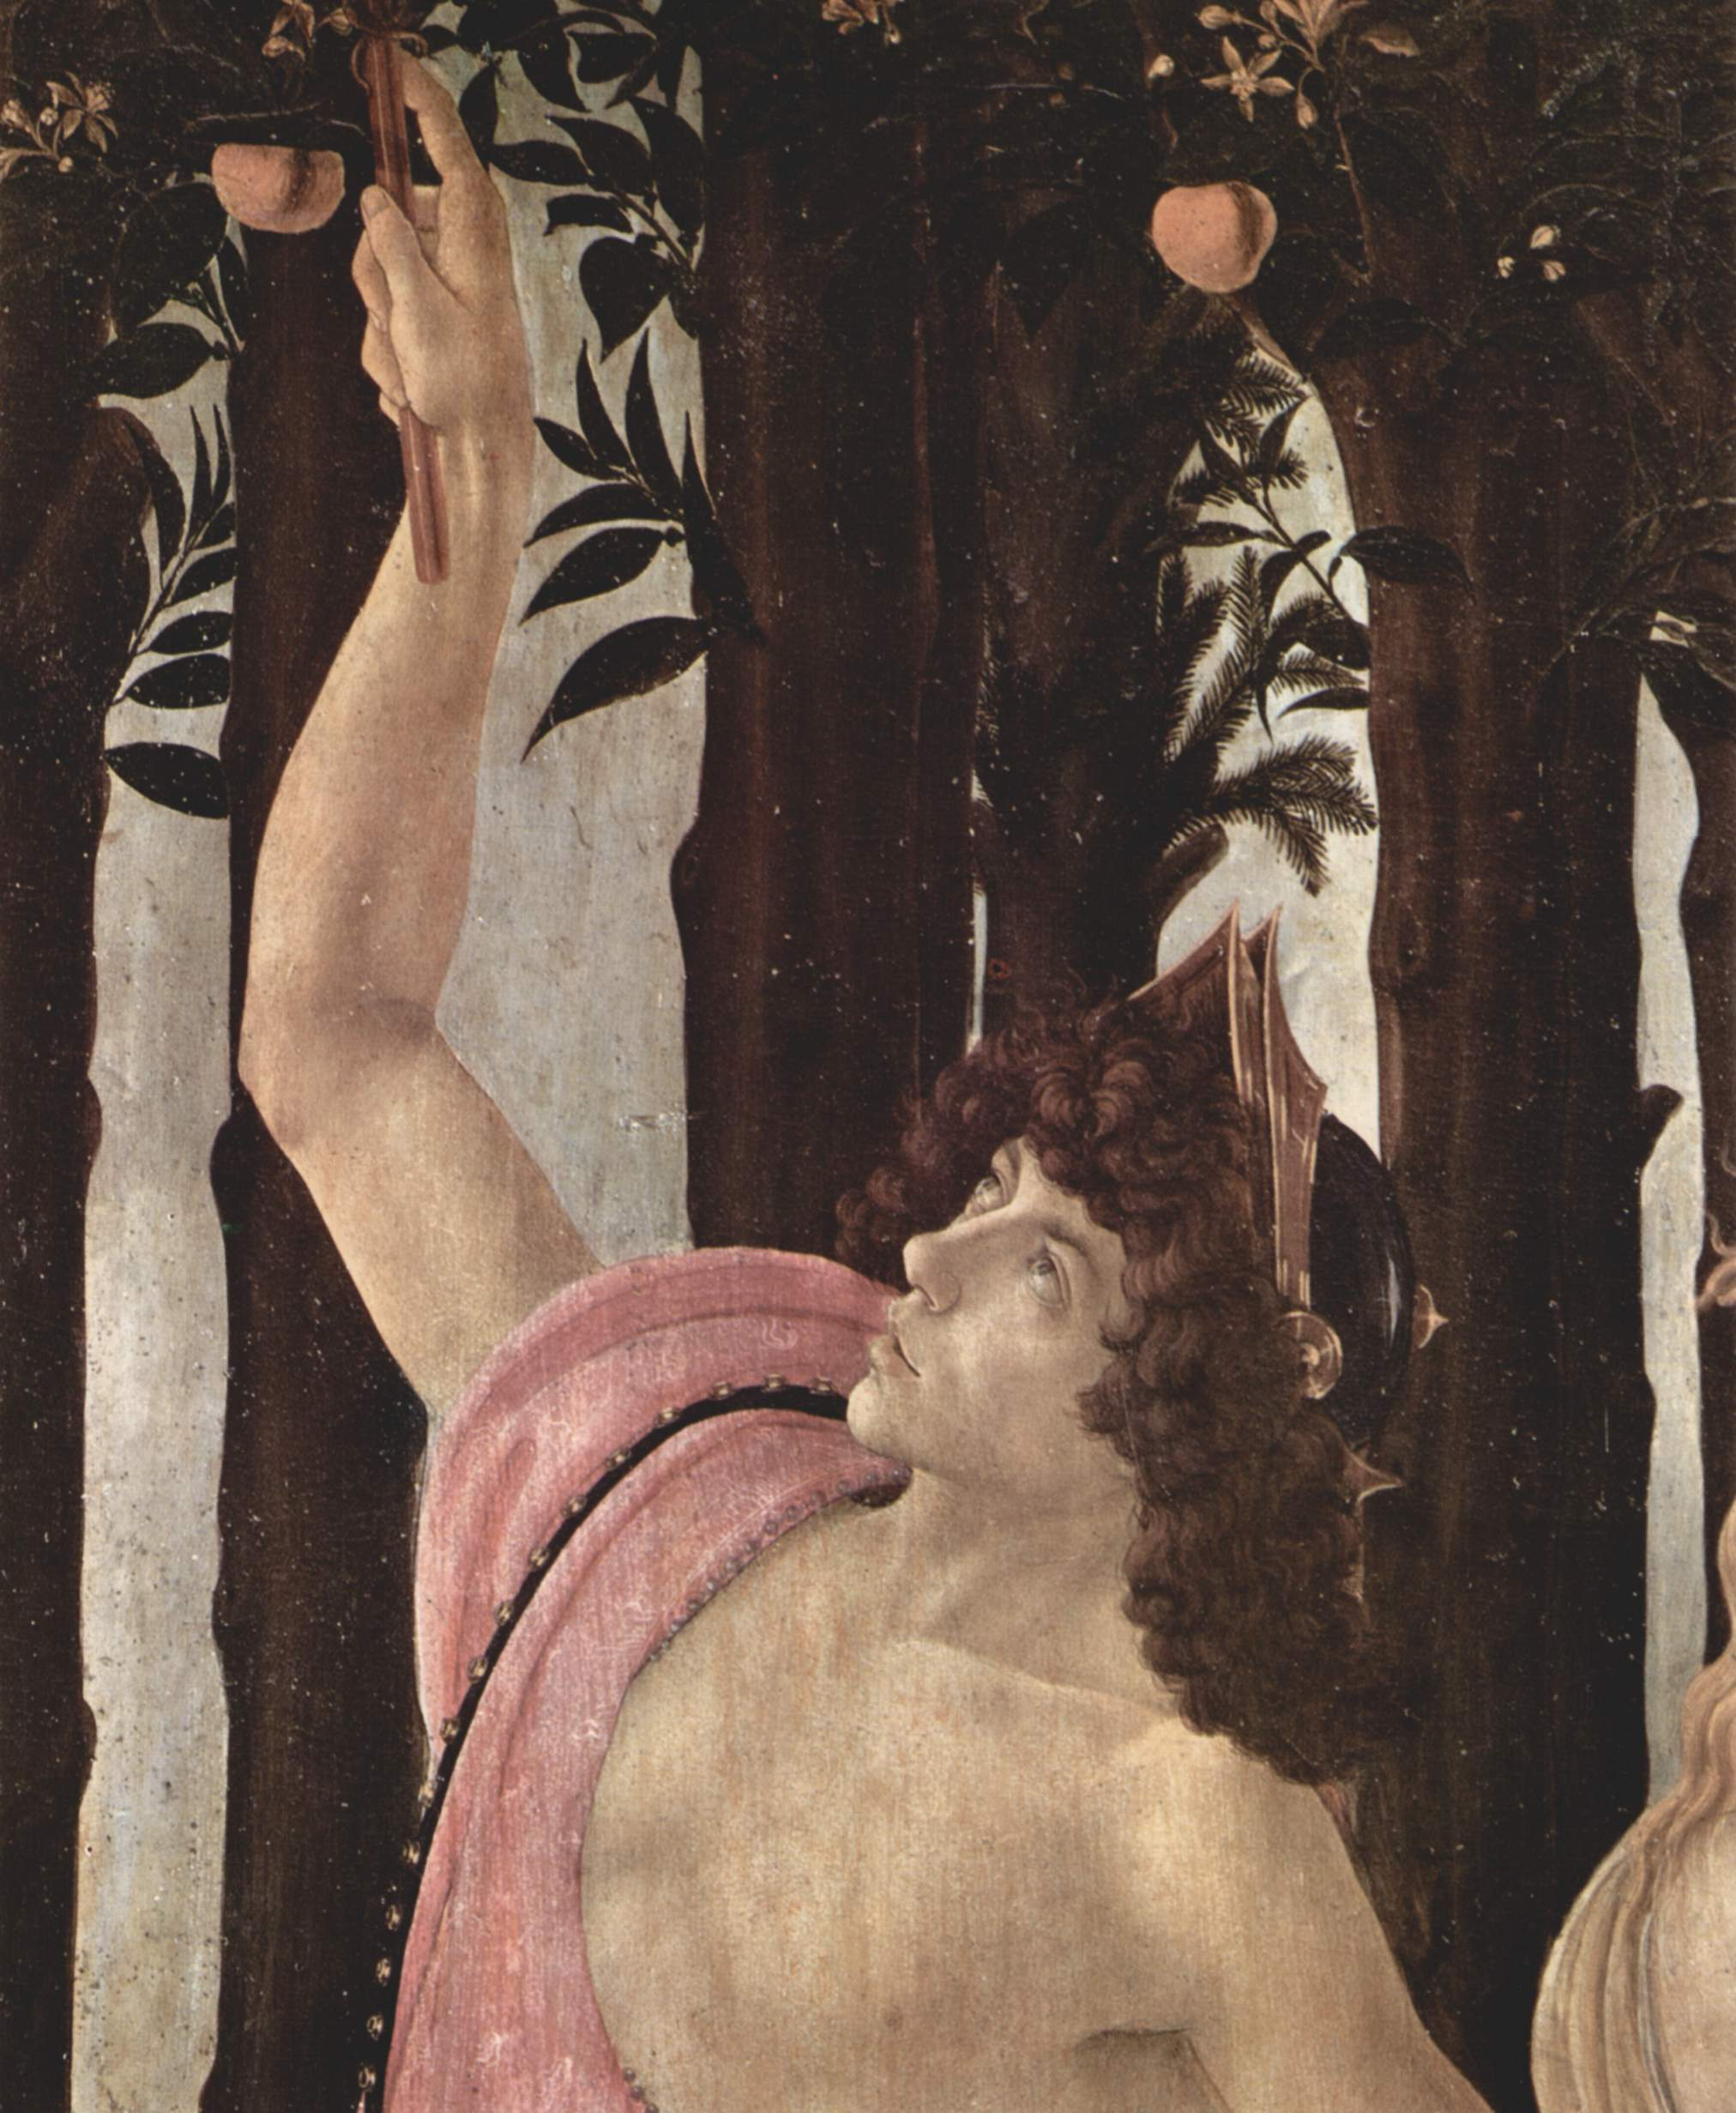 http://upload.wikimedia.org/wikipedia/commons/1/10/Sandro_Botticelli_041.jpg